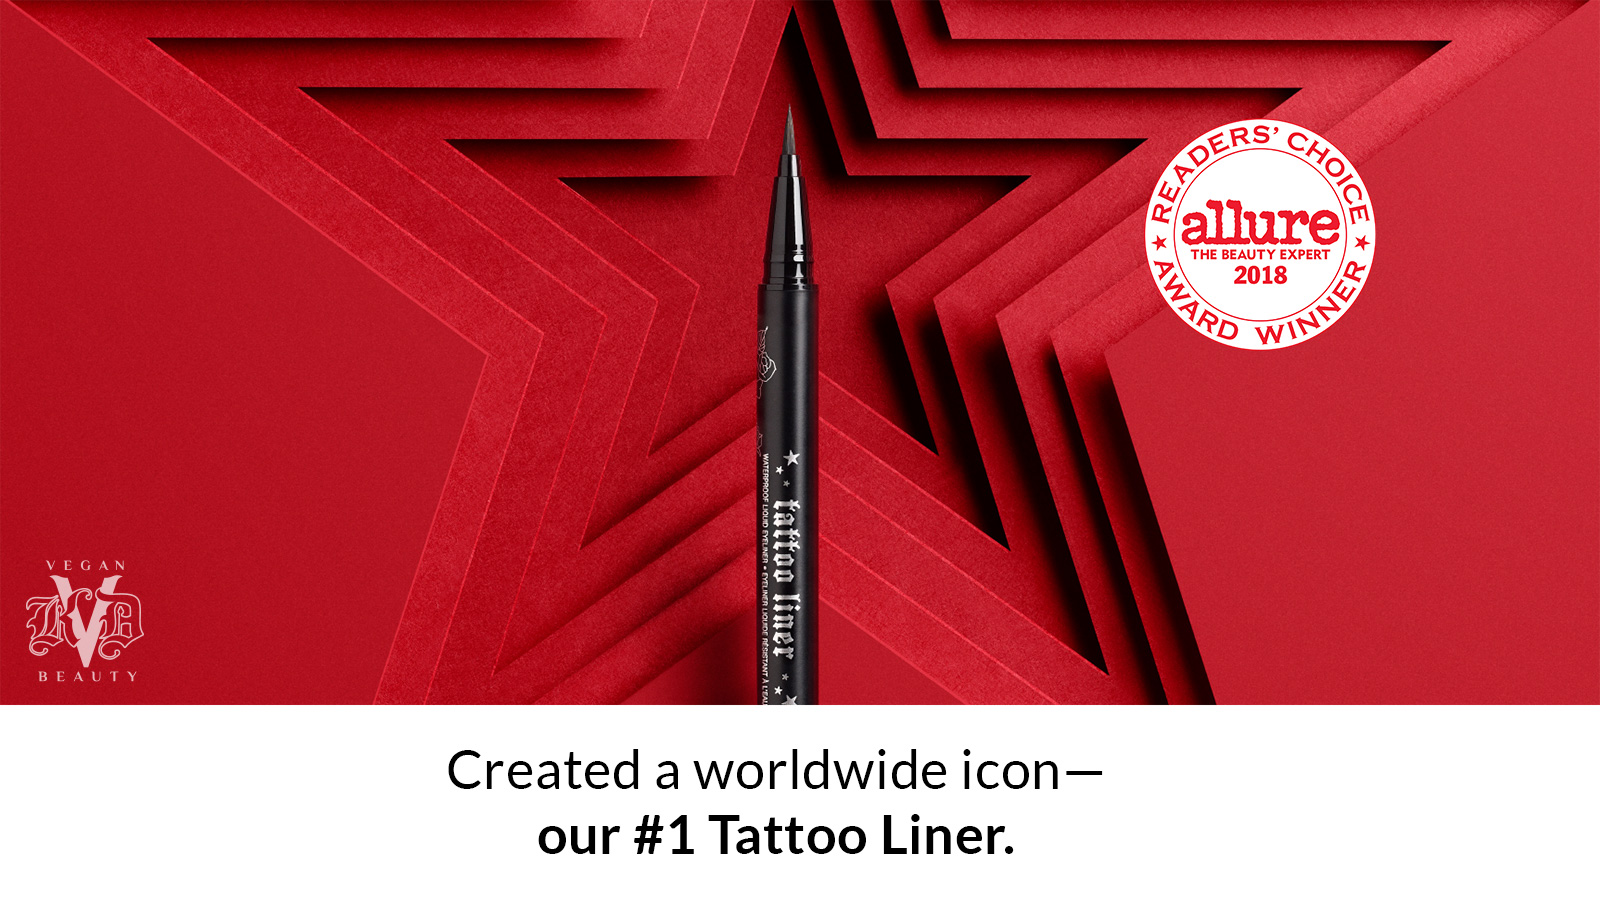 Created a worldwide icon - our #1 Tattoo Liner.